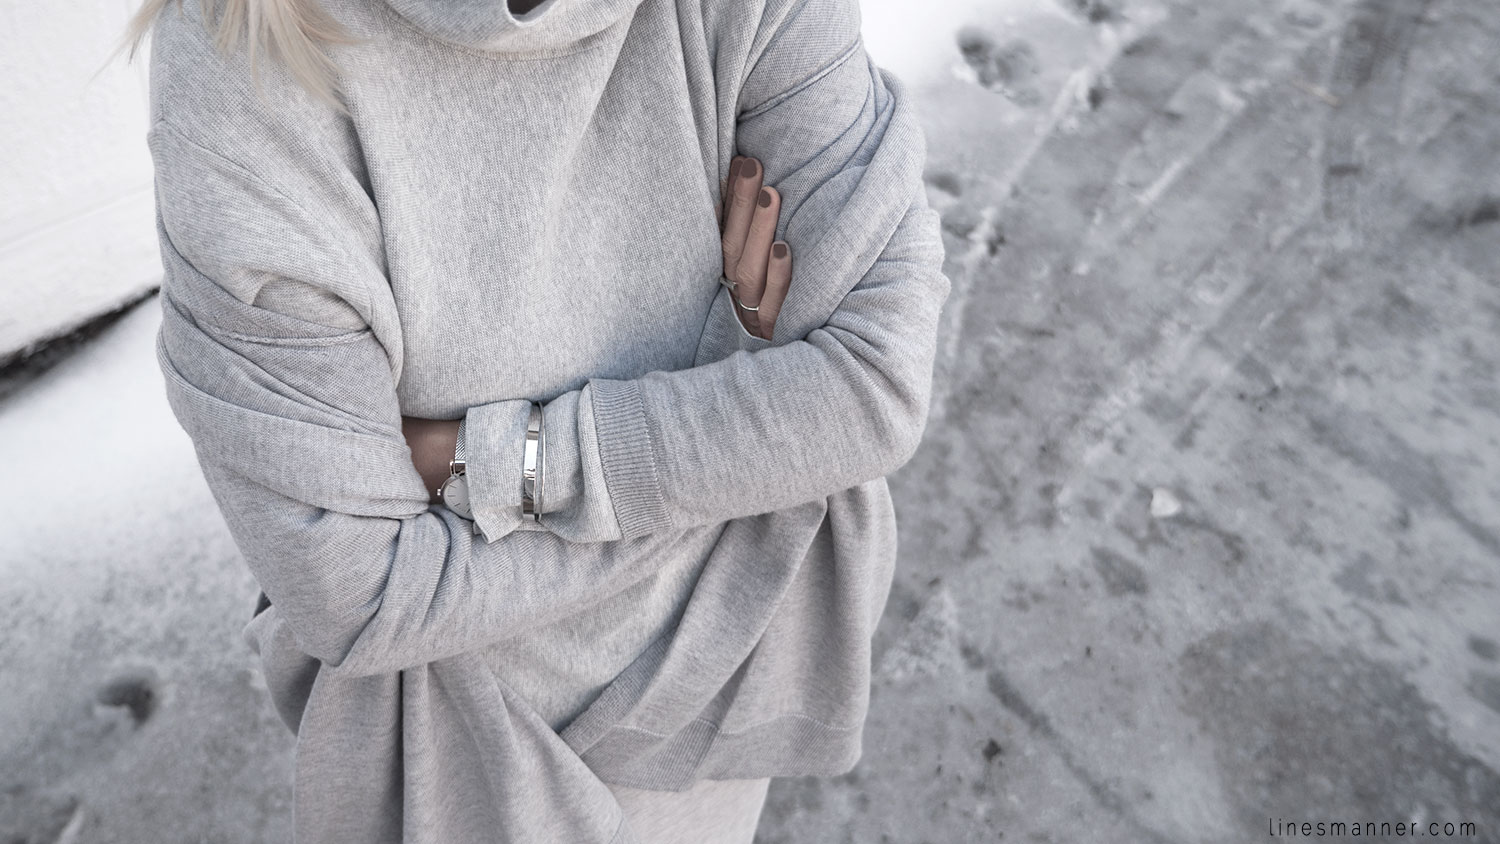 Lines-Manner-Outfit-Grey_on_grey-All_grey-Simplicty-Relaxed-Casual-Textures-Essential-Details-Staples-Minimal-Knit-Cardigan-Coisa-Layering-3